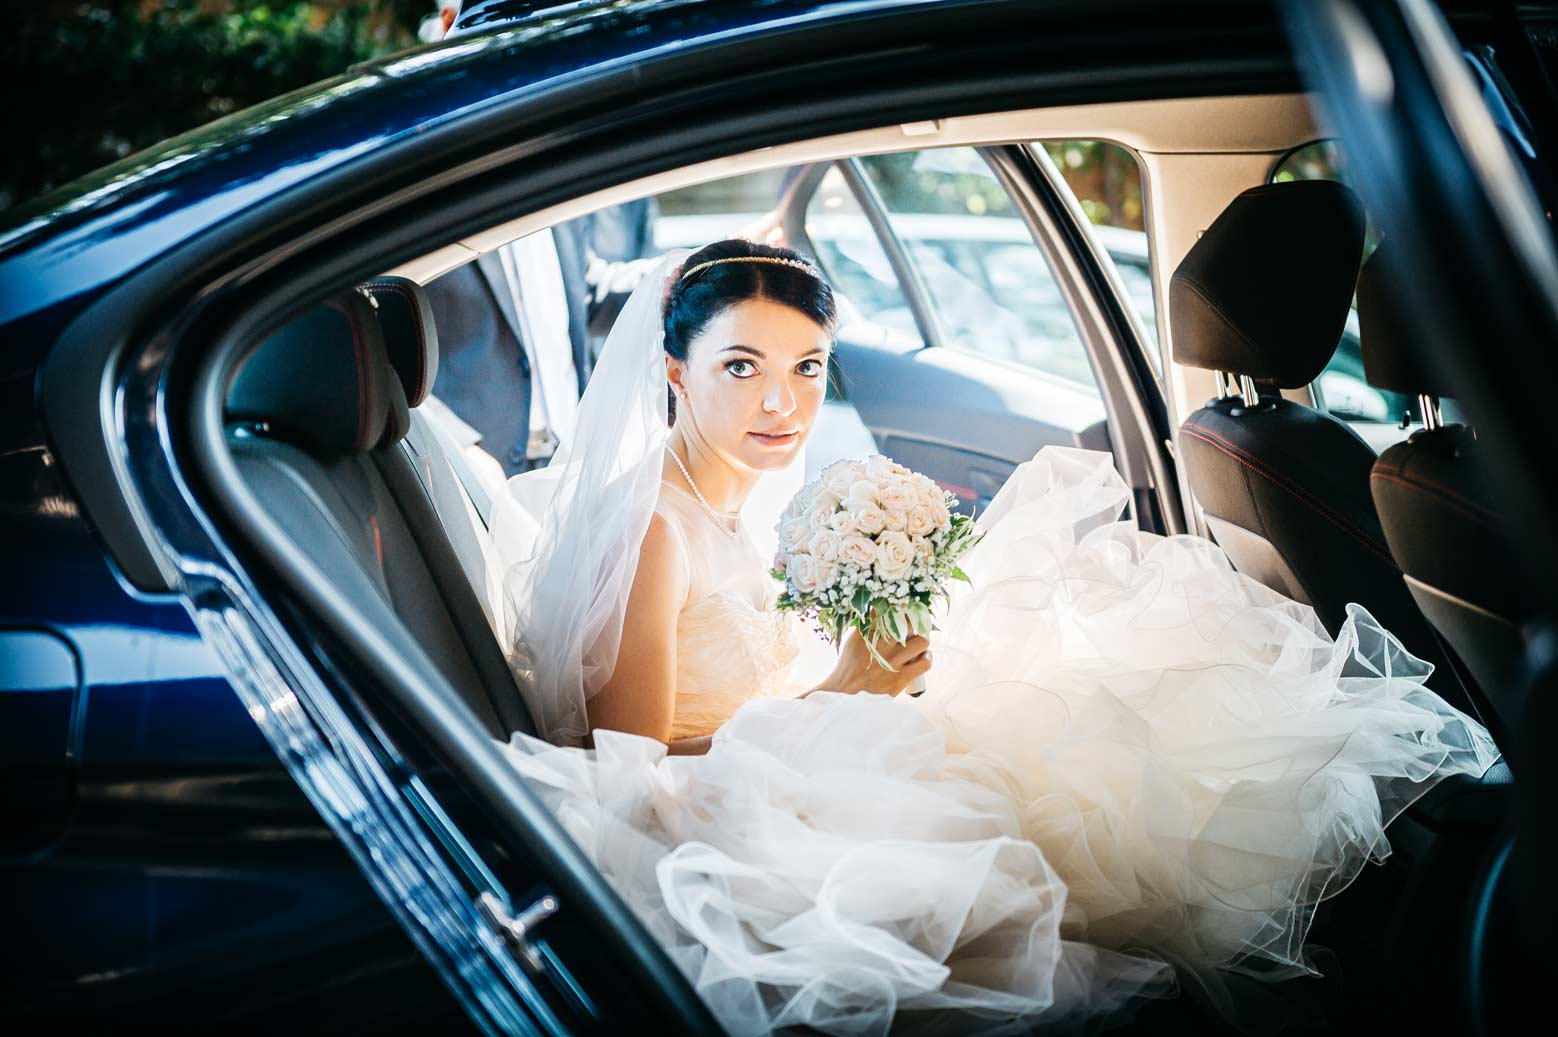 Reportage-Wedding-Photography-Natural-Wedding-Photography-Ceremony